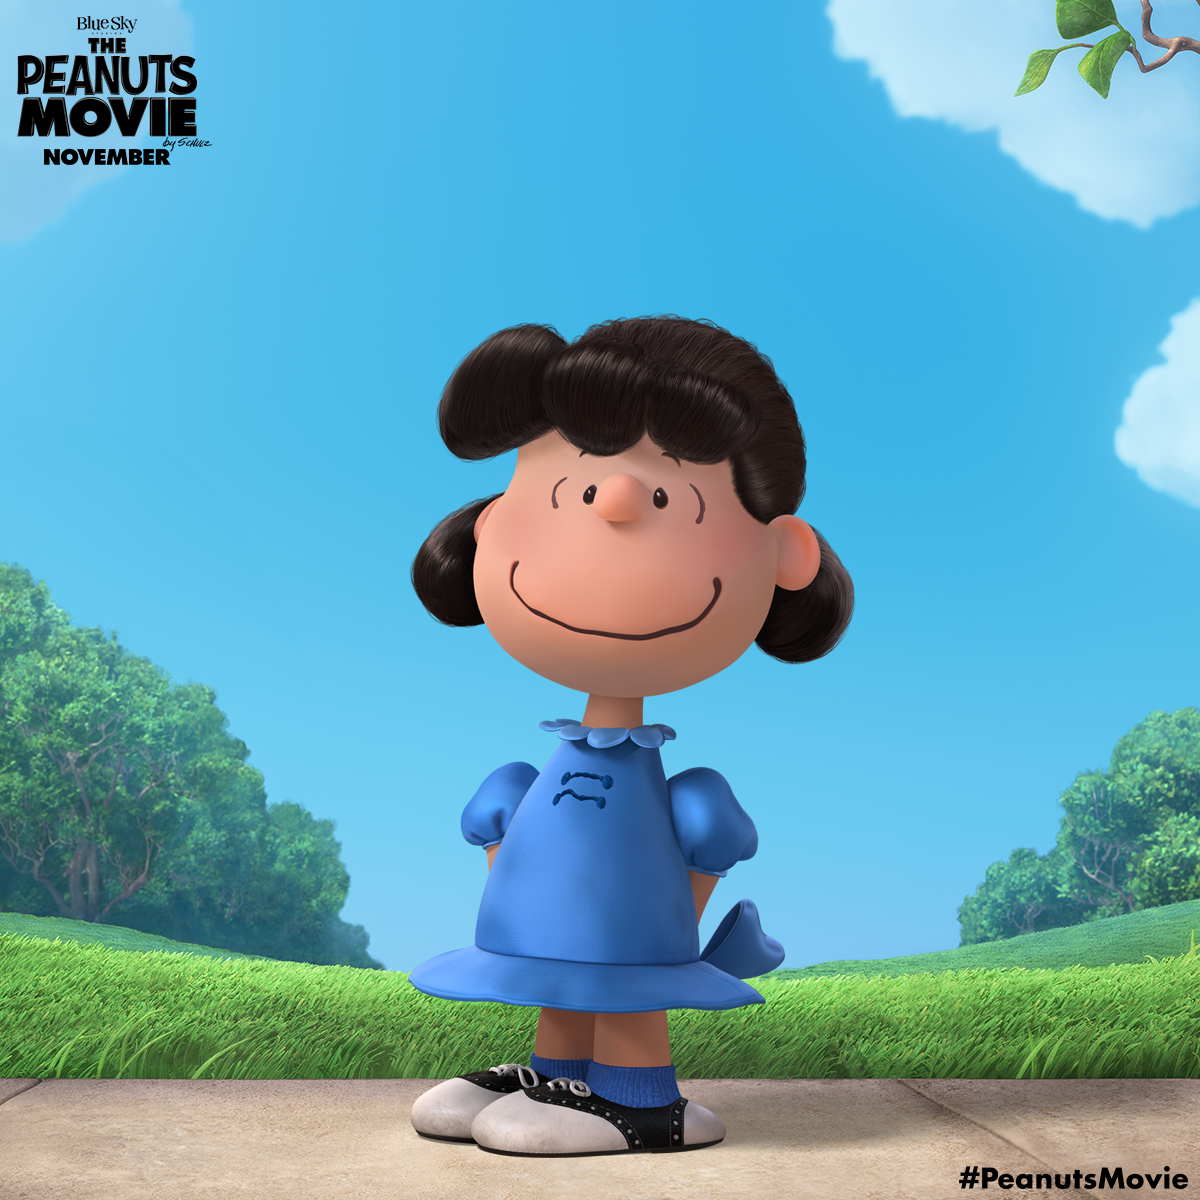 lucy peanuts 2015 related - photo #12